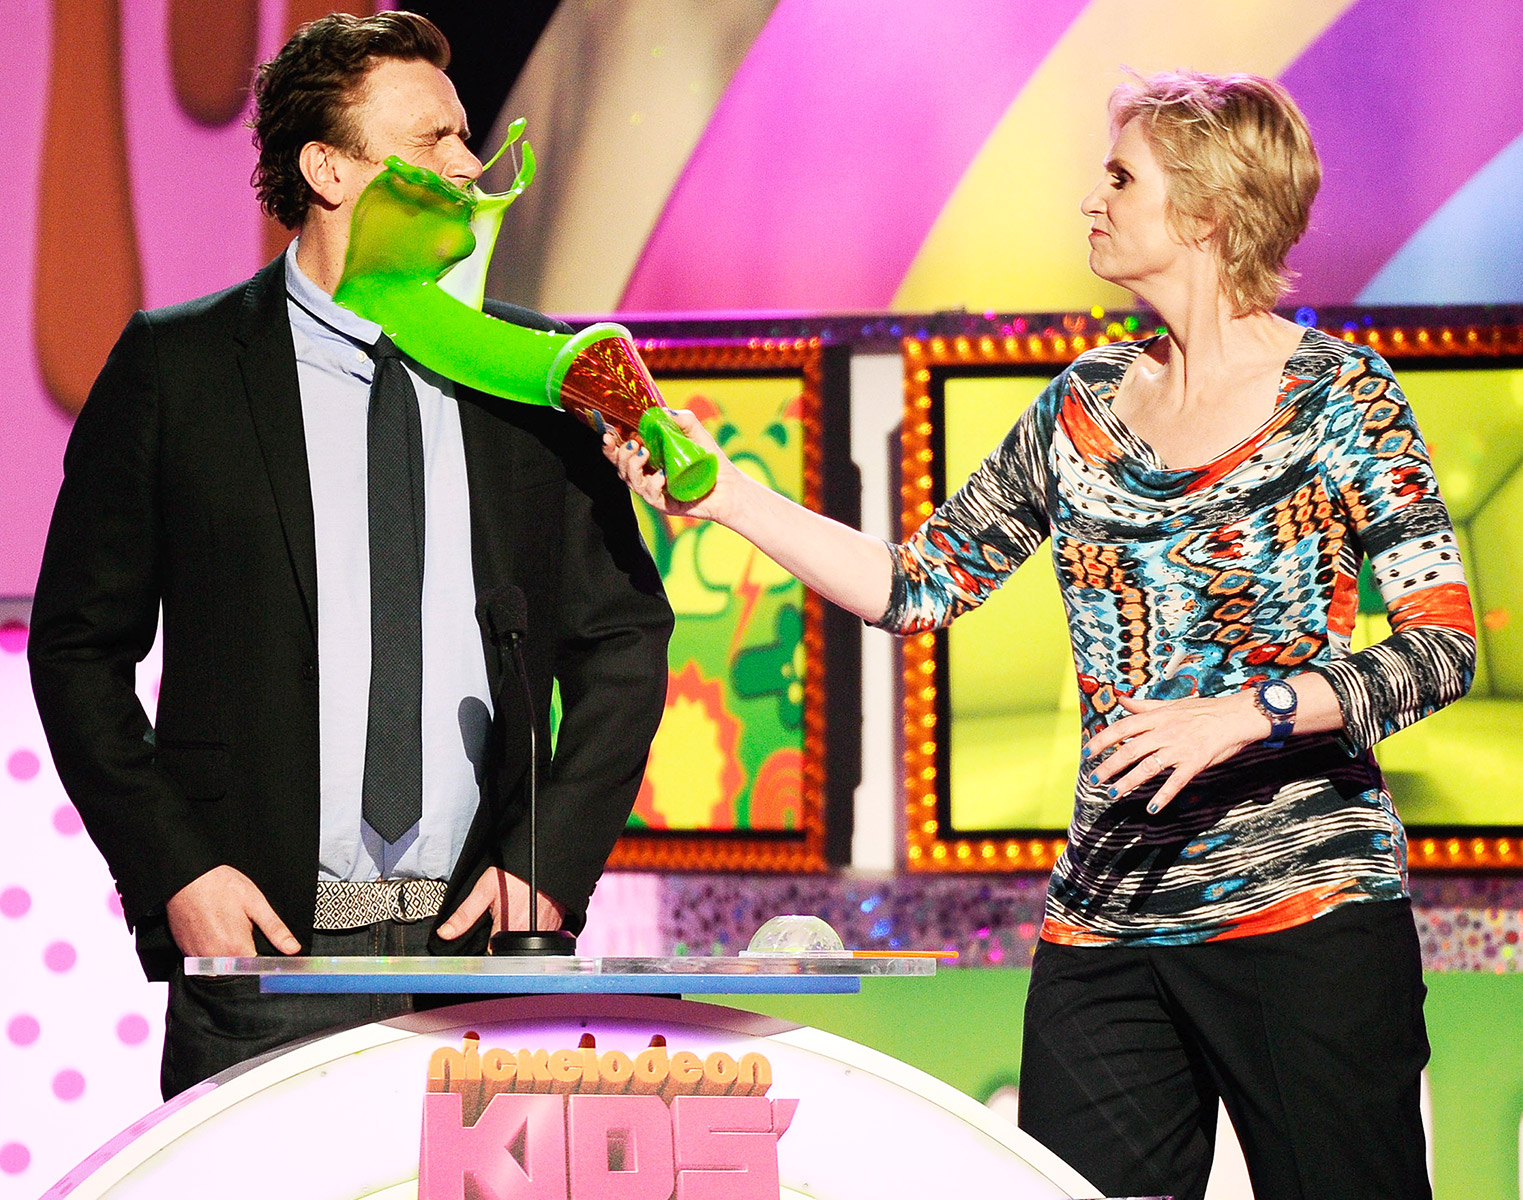 On April 2, 2011, the How I Met Your Mother actor was slimed by his co-presenter Jane Lynch , who payed homage to a scene from her hit FOX series Glee .